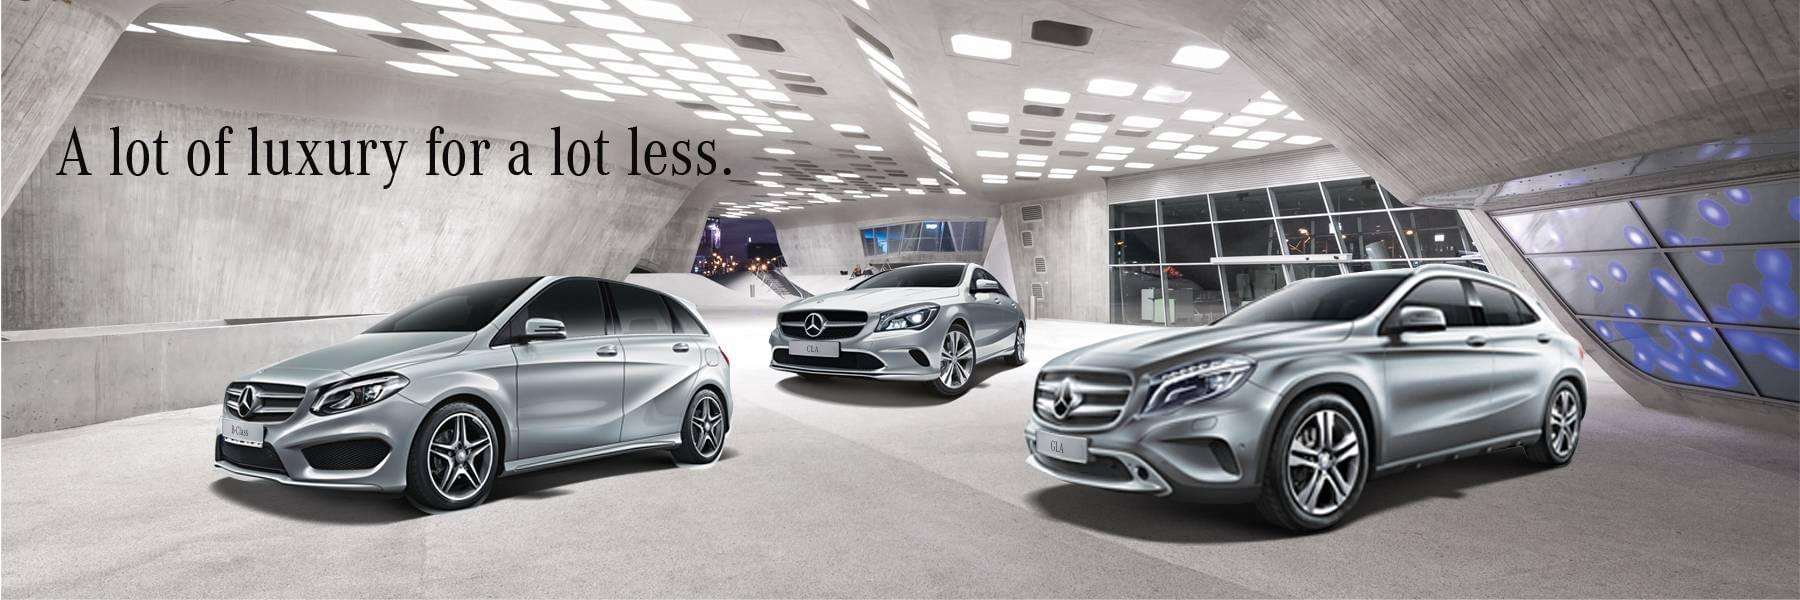 New mercedes benz car specials greater vancouver area for Mercedes benz special deals